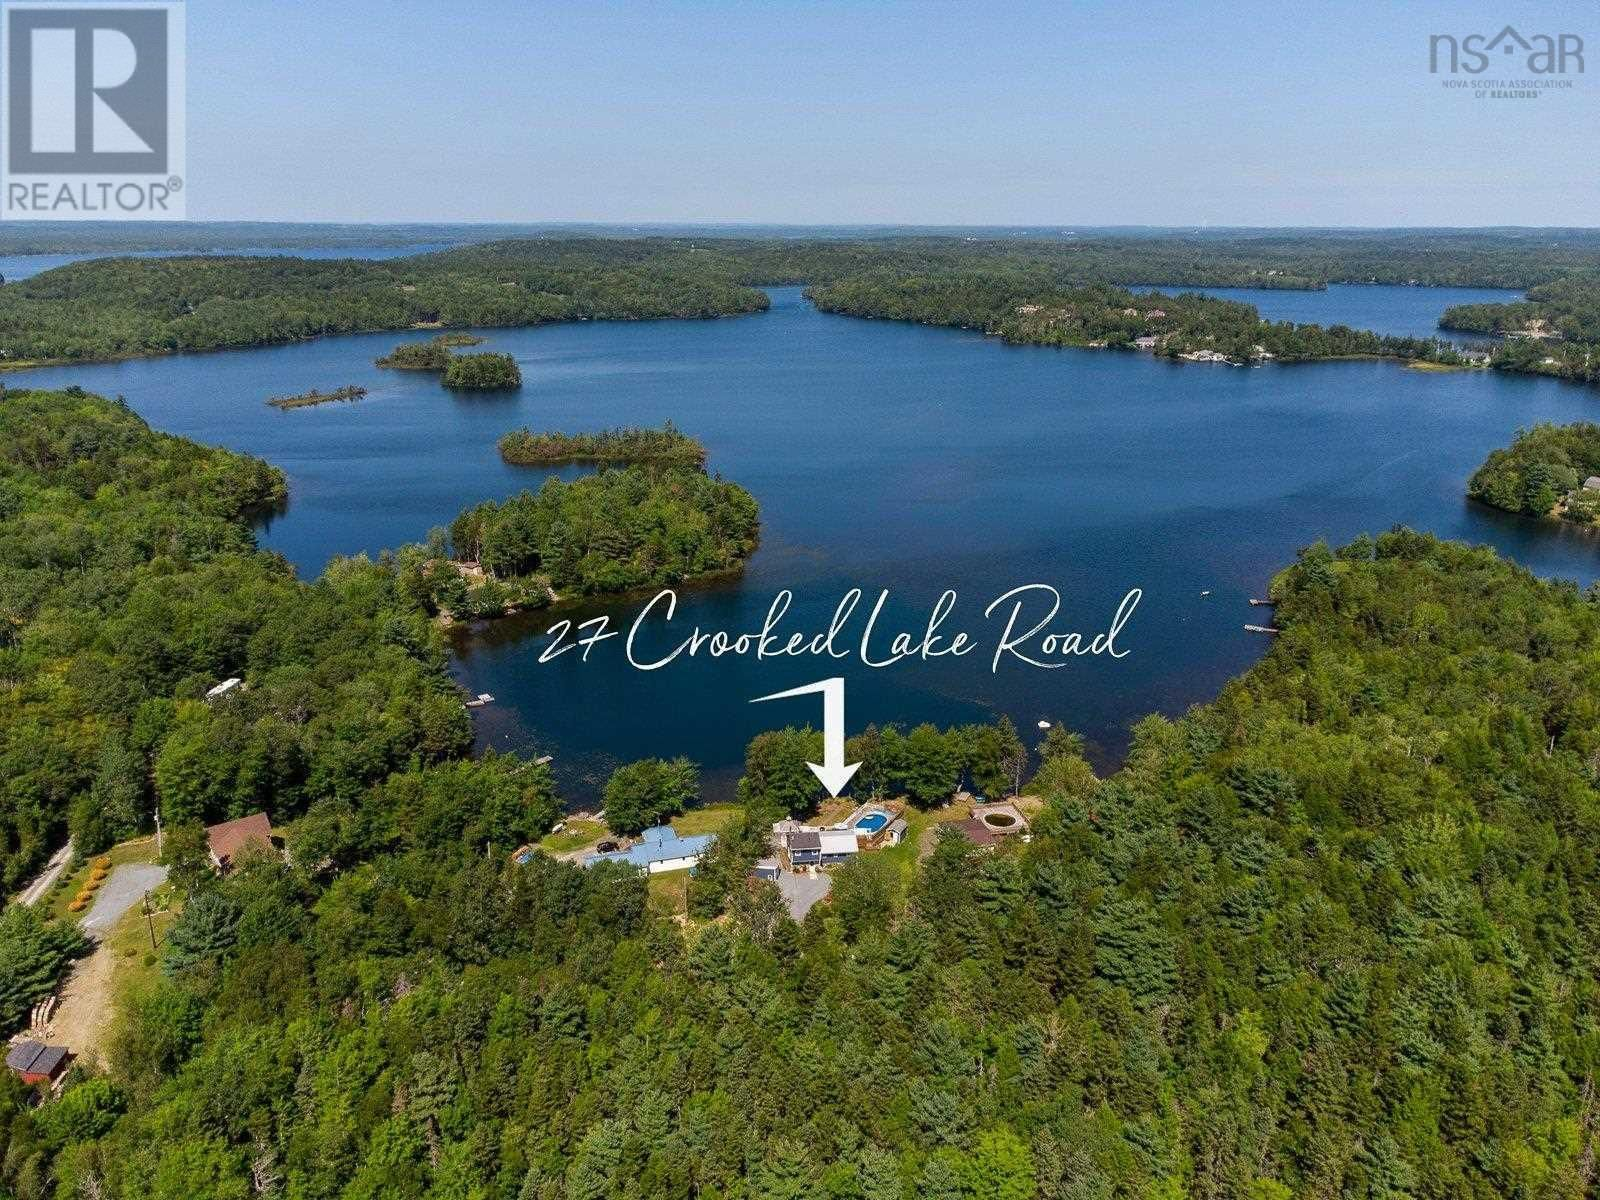 Main Photo: 27 CROOKED LAKE Road in Camperdown: House for sale : MLS®# 202124053